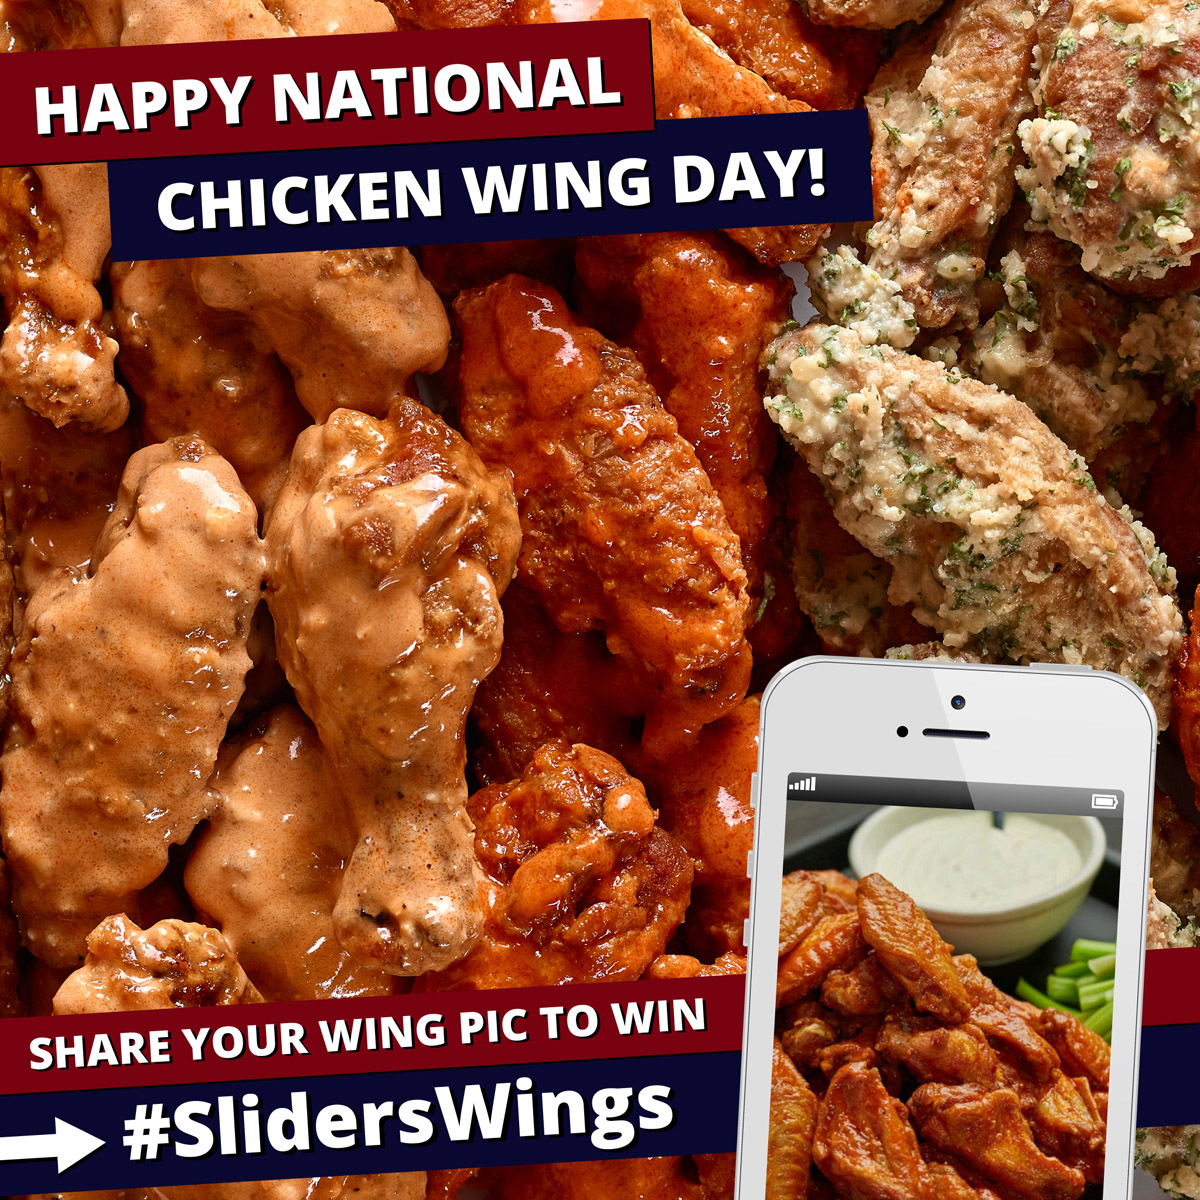 National Chicken Wing Day - 1